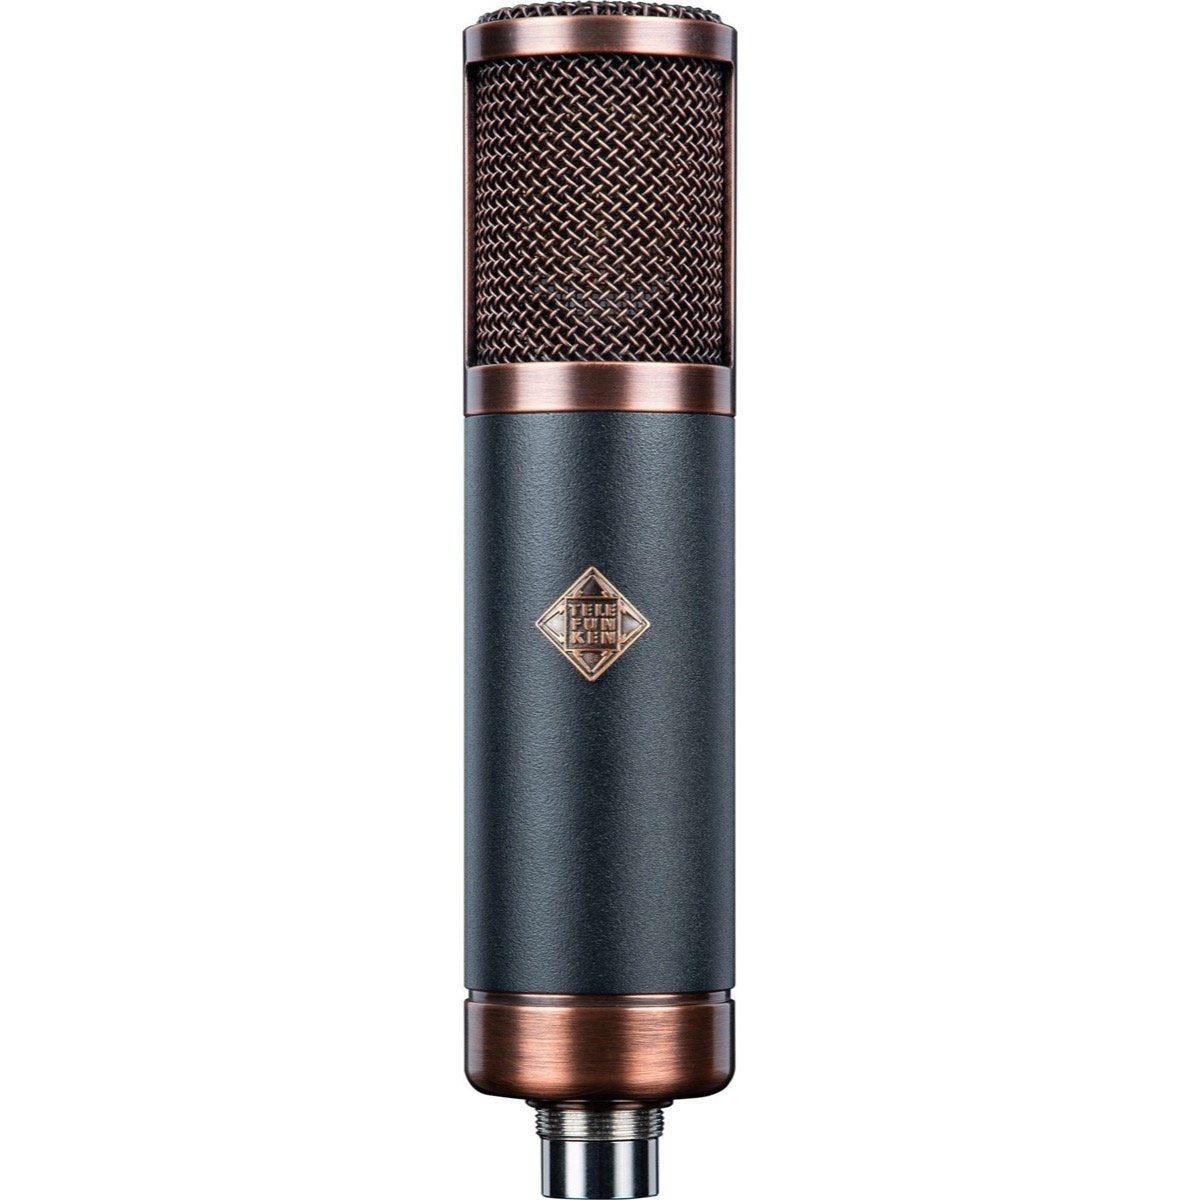 Telefunken TF39 Copperhead Deluxe Multi-Pattern Large-Diaphragm Condenser Microphone